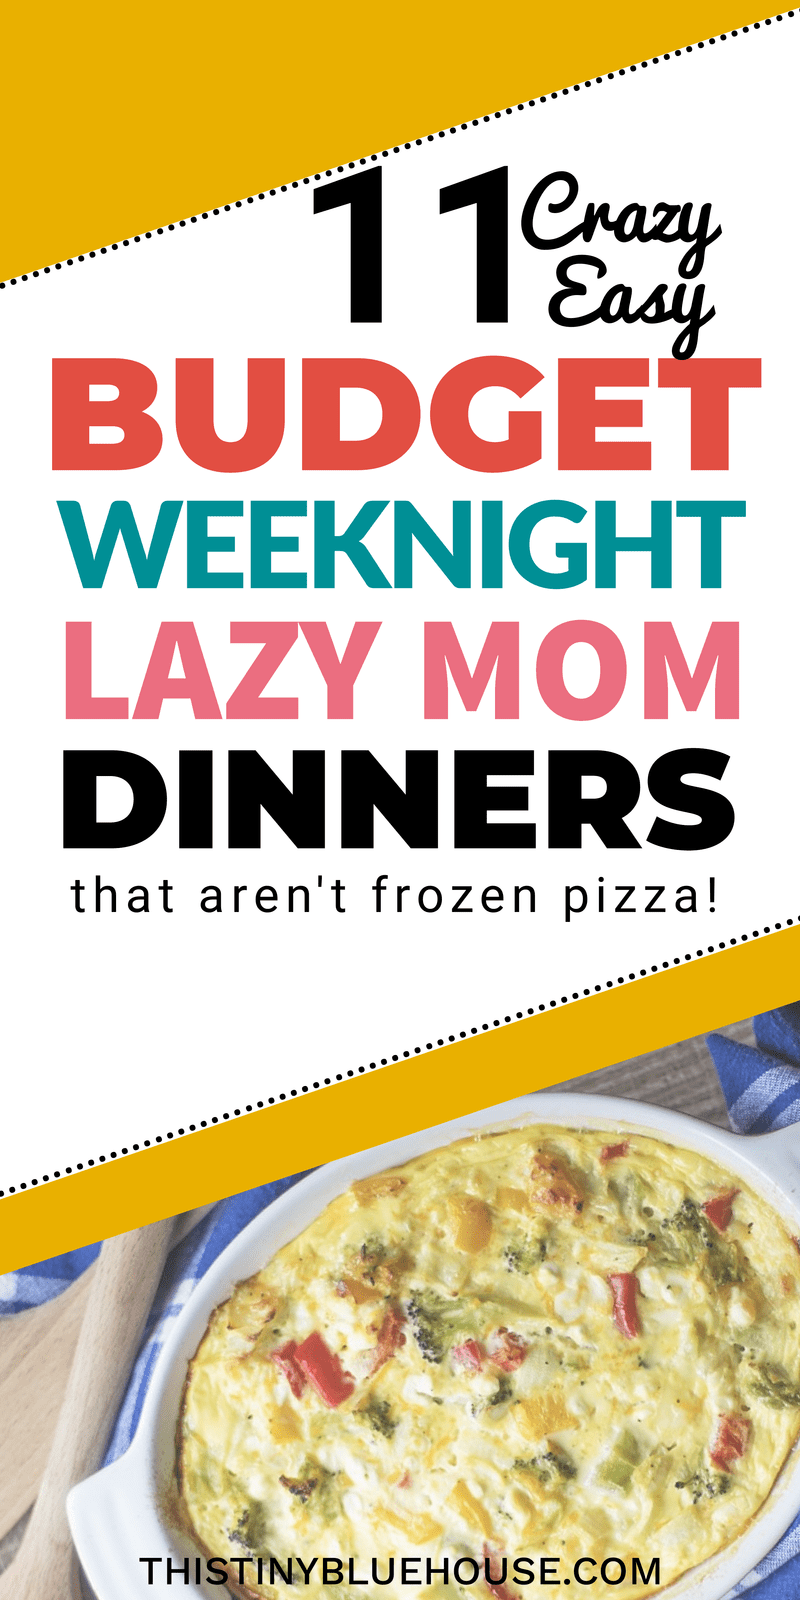 Are you feeling lazy tonight momma? Here are 11 crazy easy, budget friendly lazy weeknight dinners that you gotta try. Delicious, healthy and above all EASY! These easy dinner ideas are perfect for a lazy weeknight dinner. lazy mom meals | easy dinner ideas | easy dinner | busy mom dinners | simple dinner ideas for busy moms